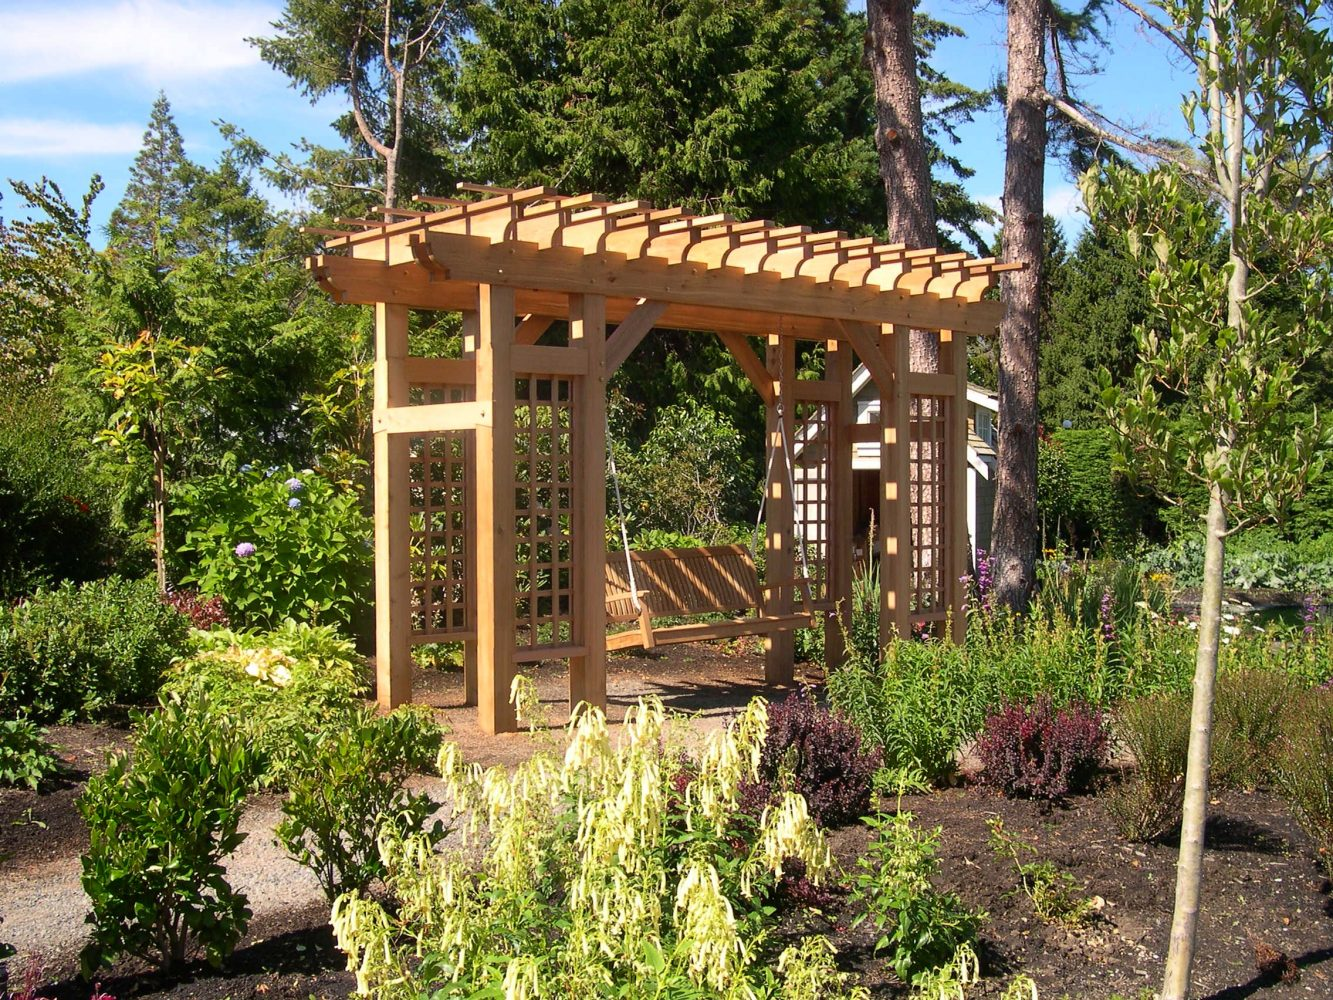 Cedar arbour with swing